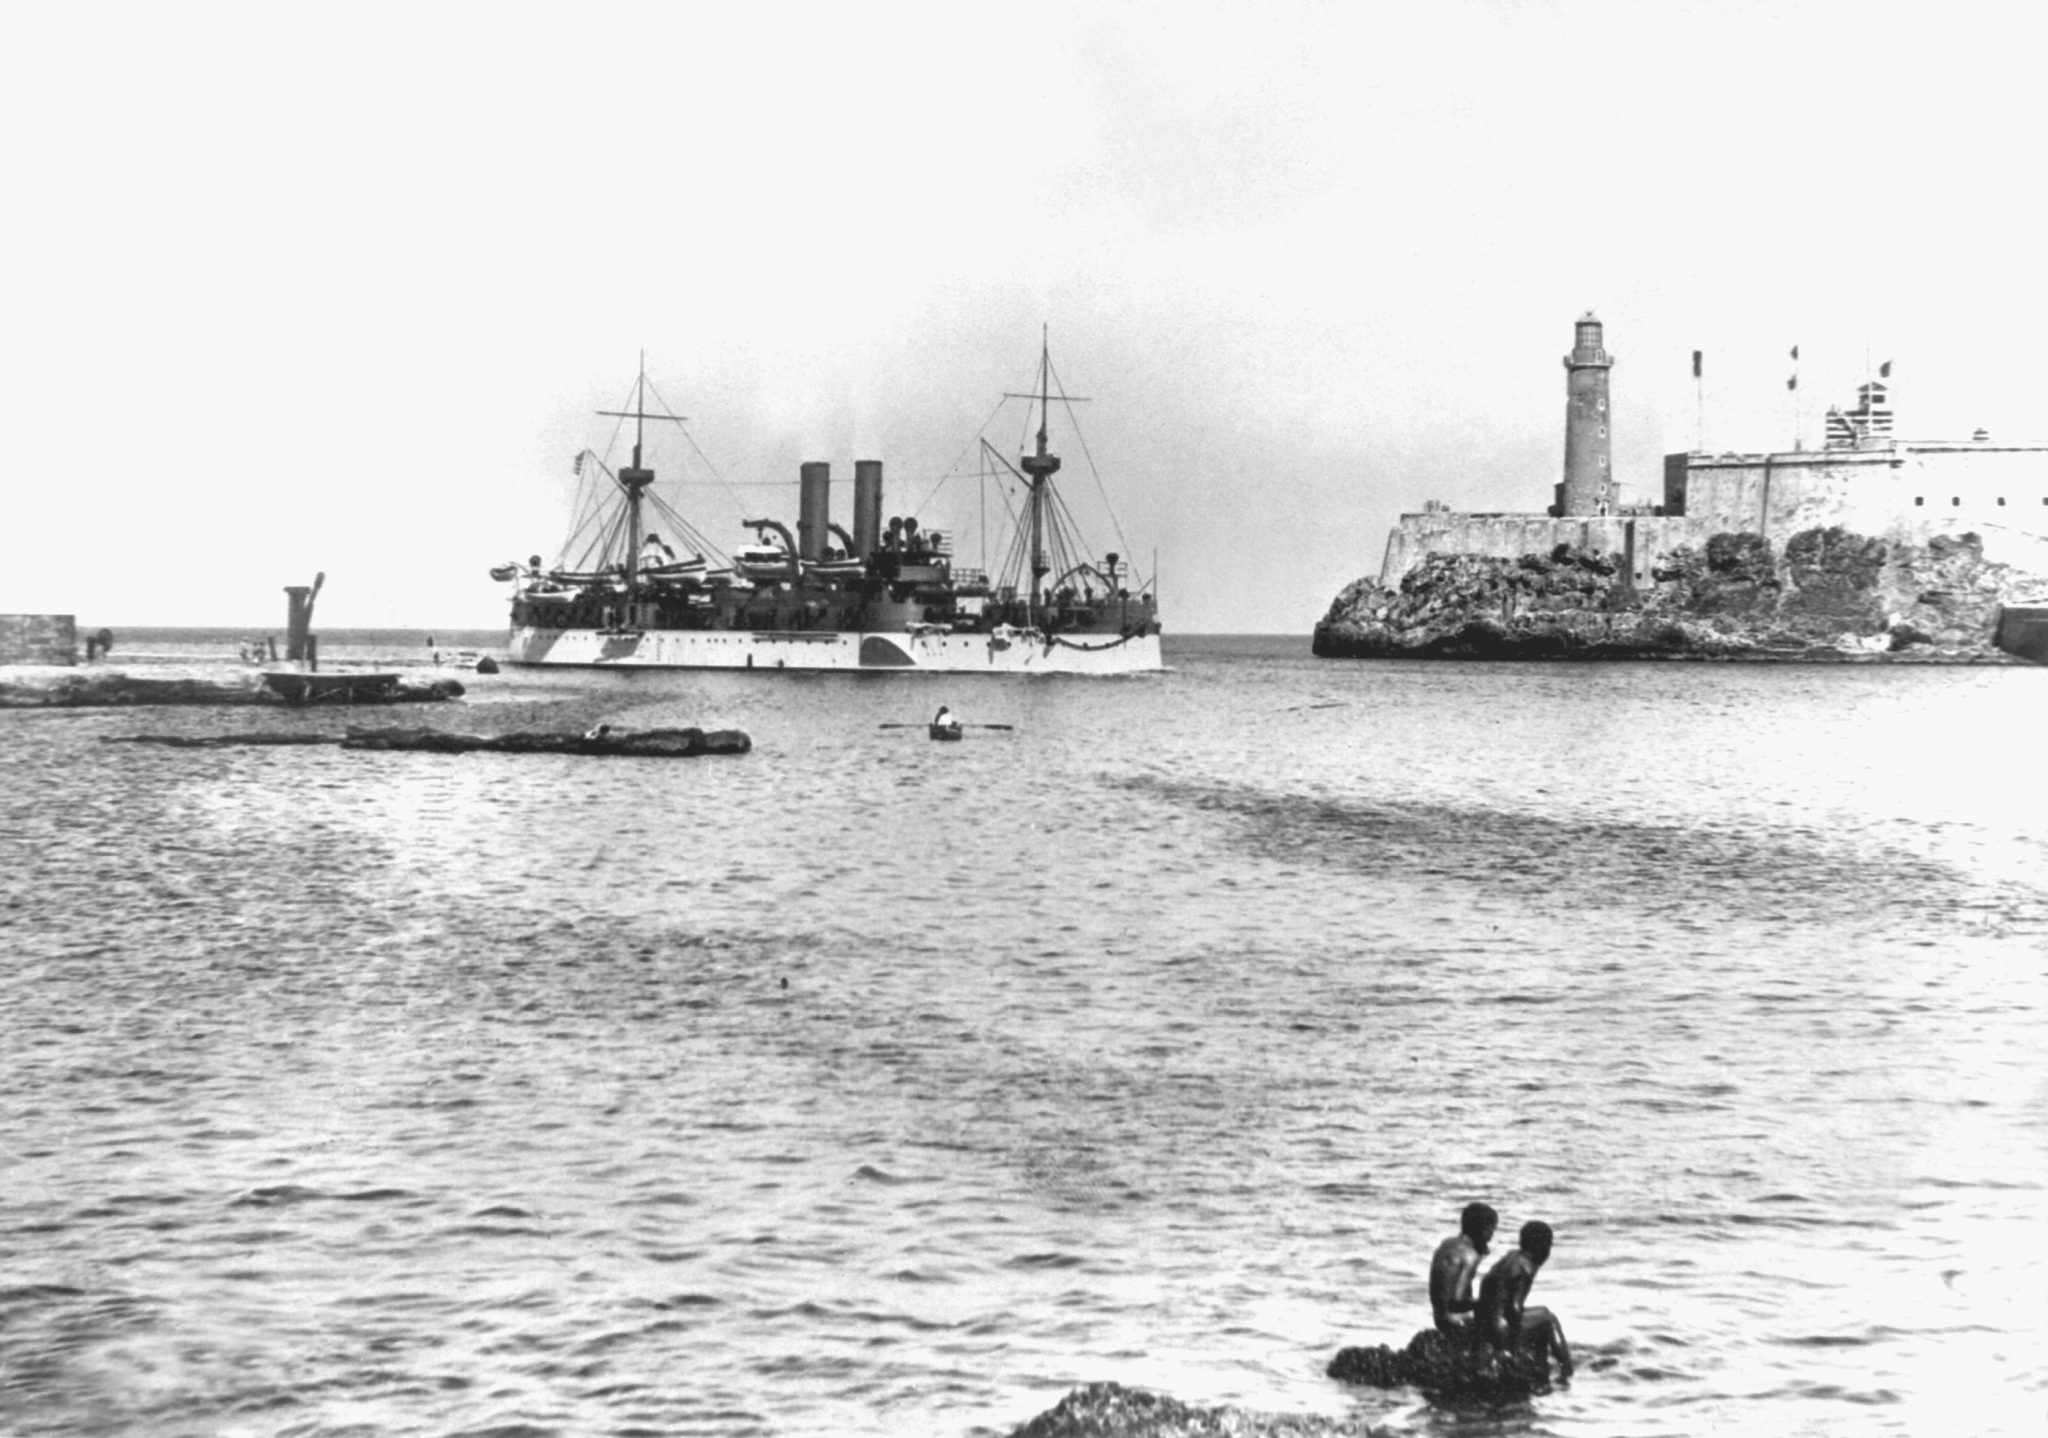 The USS Maine entered Havana harbor on January 25, 1898